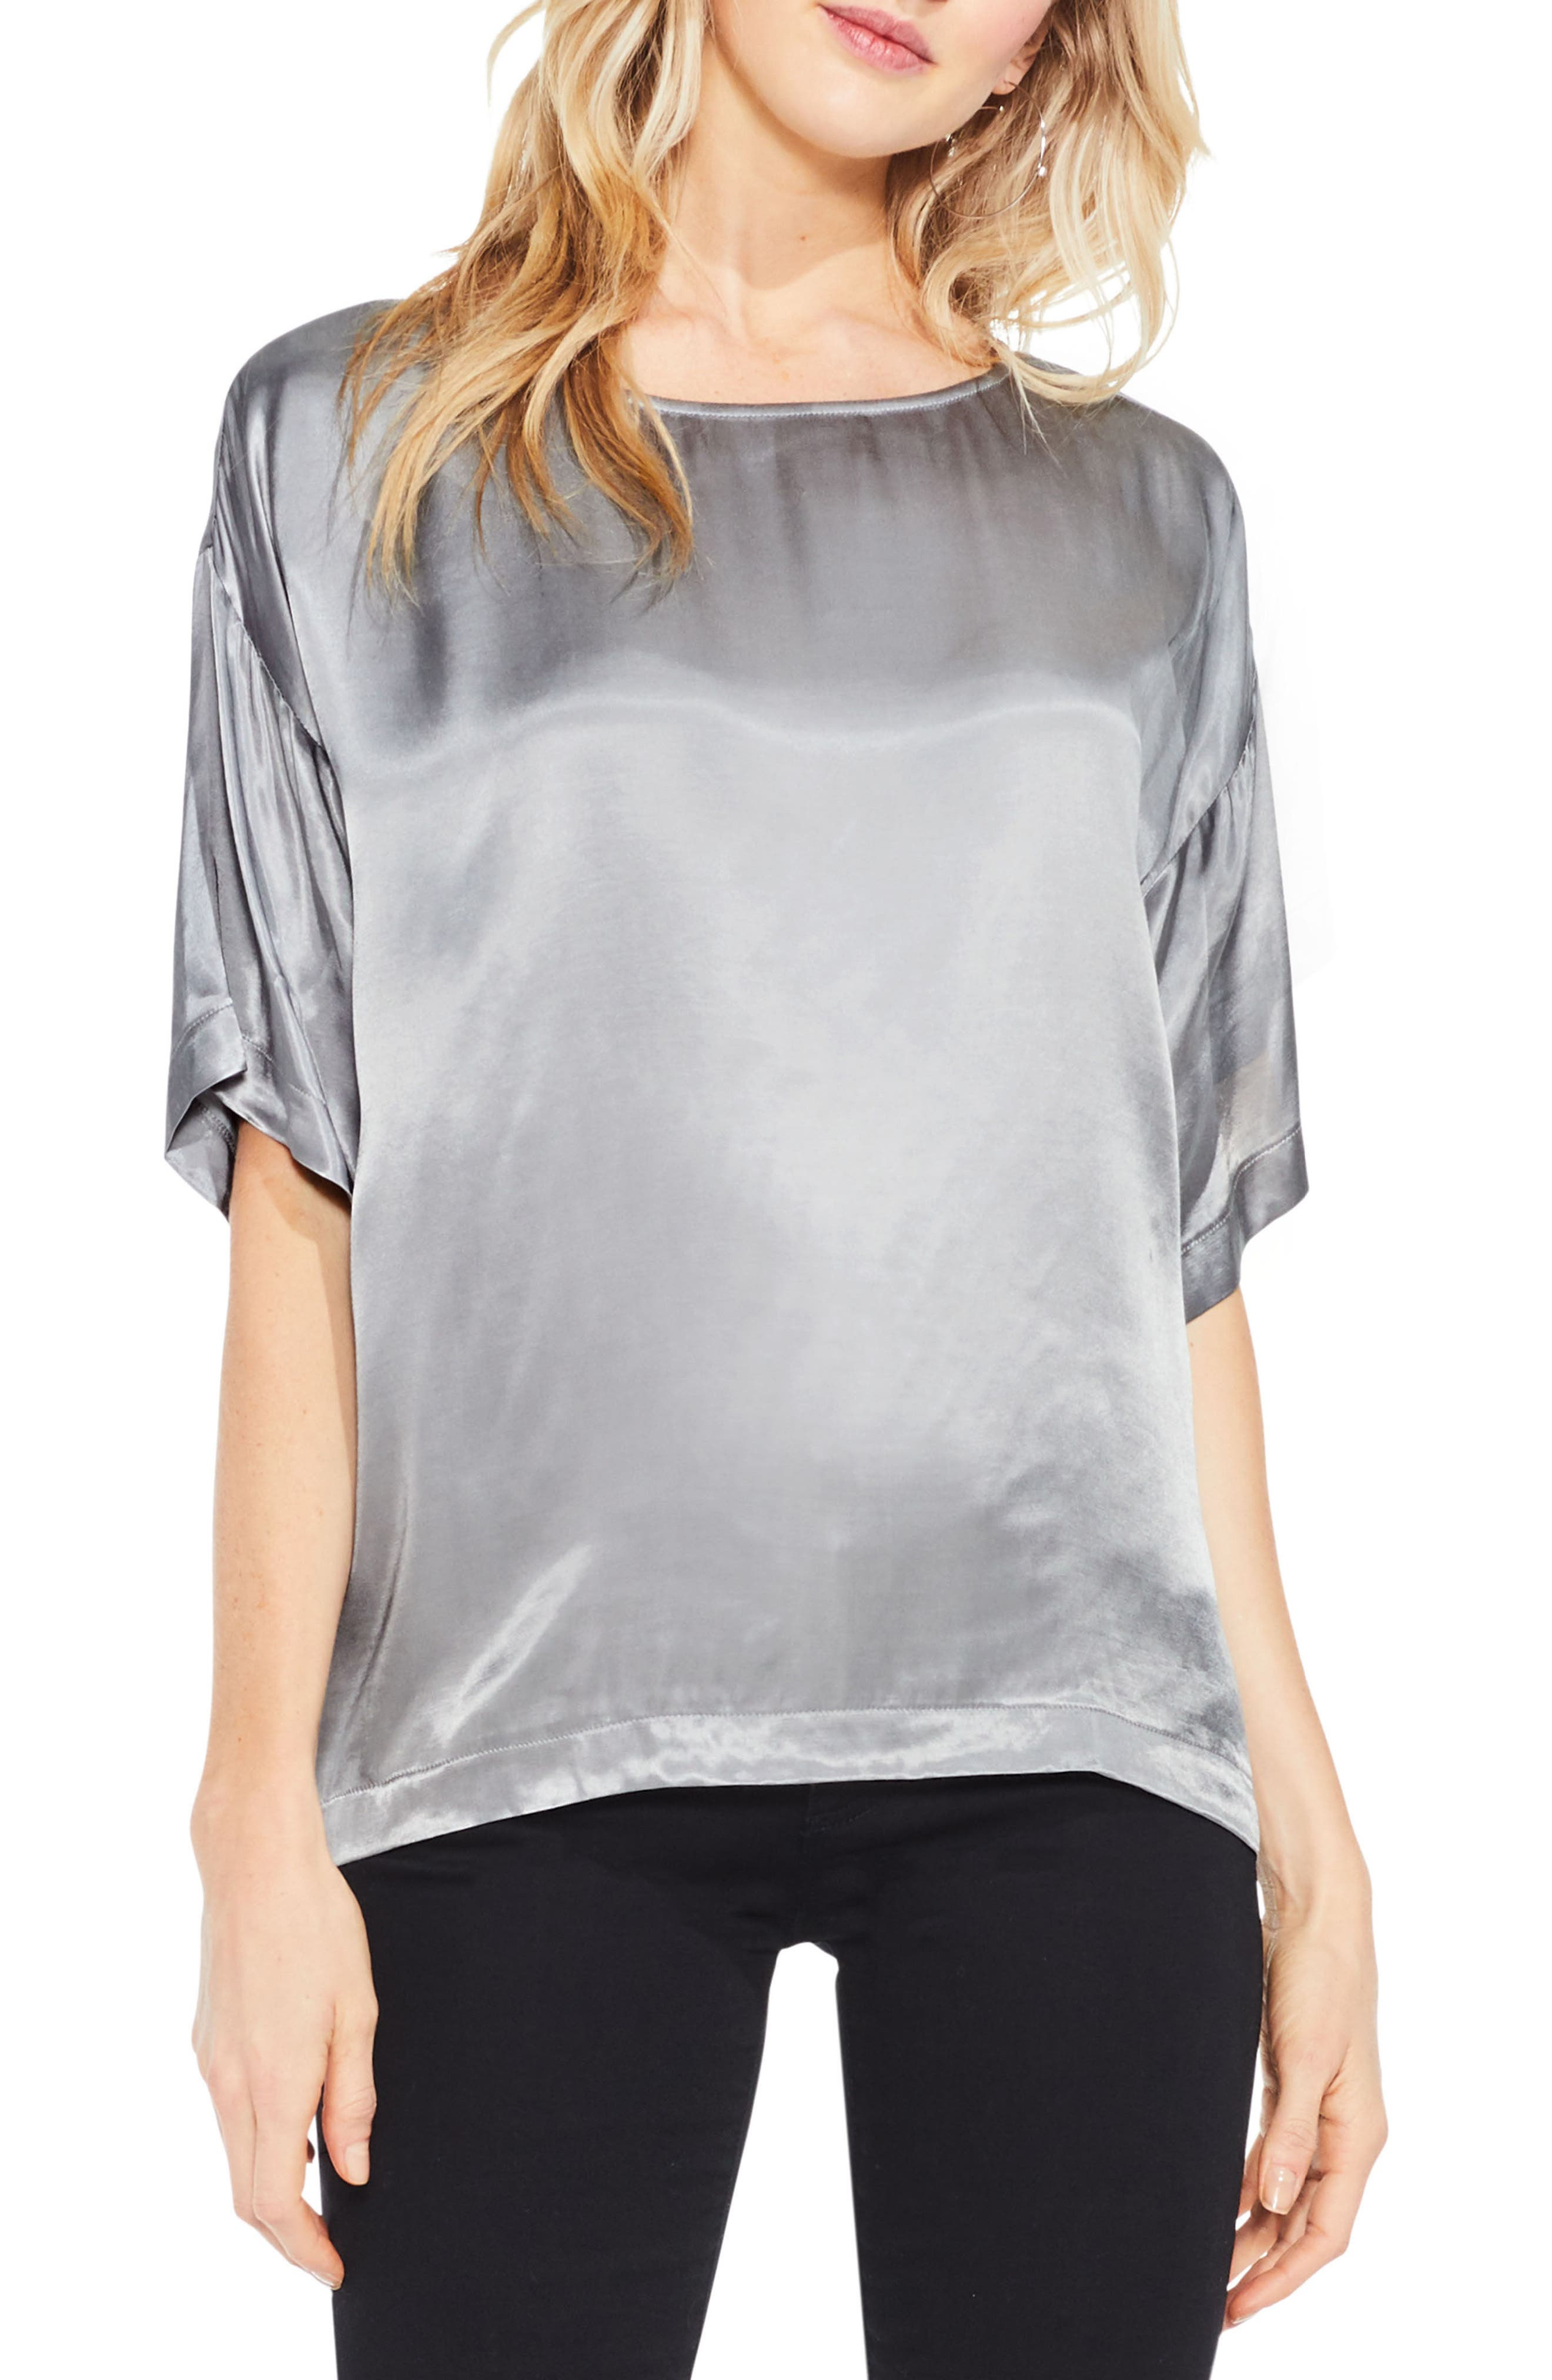 Alternate Image 1 Selected - Two by Vince Camuto Satin Tee